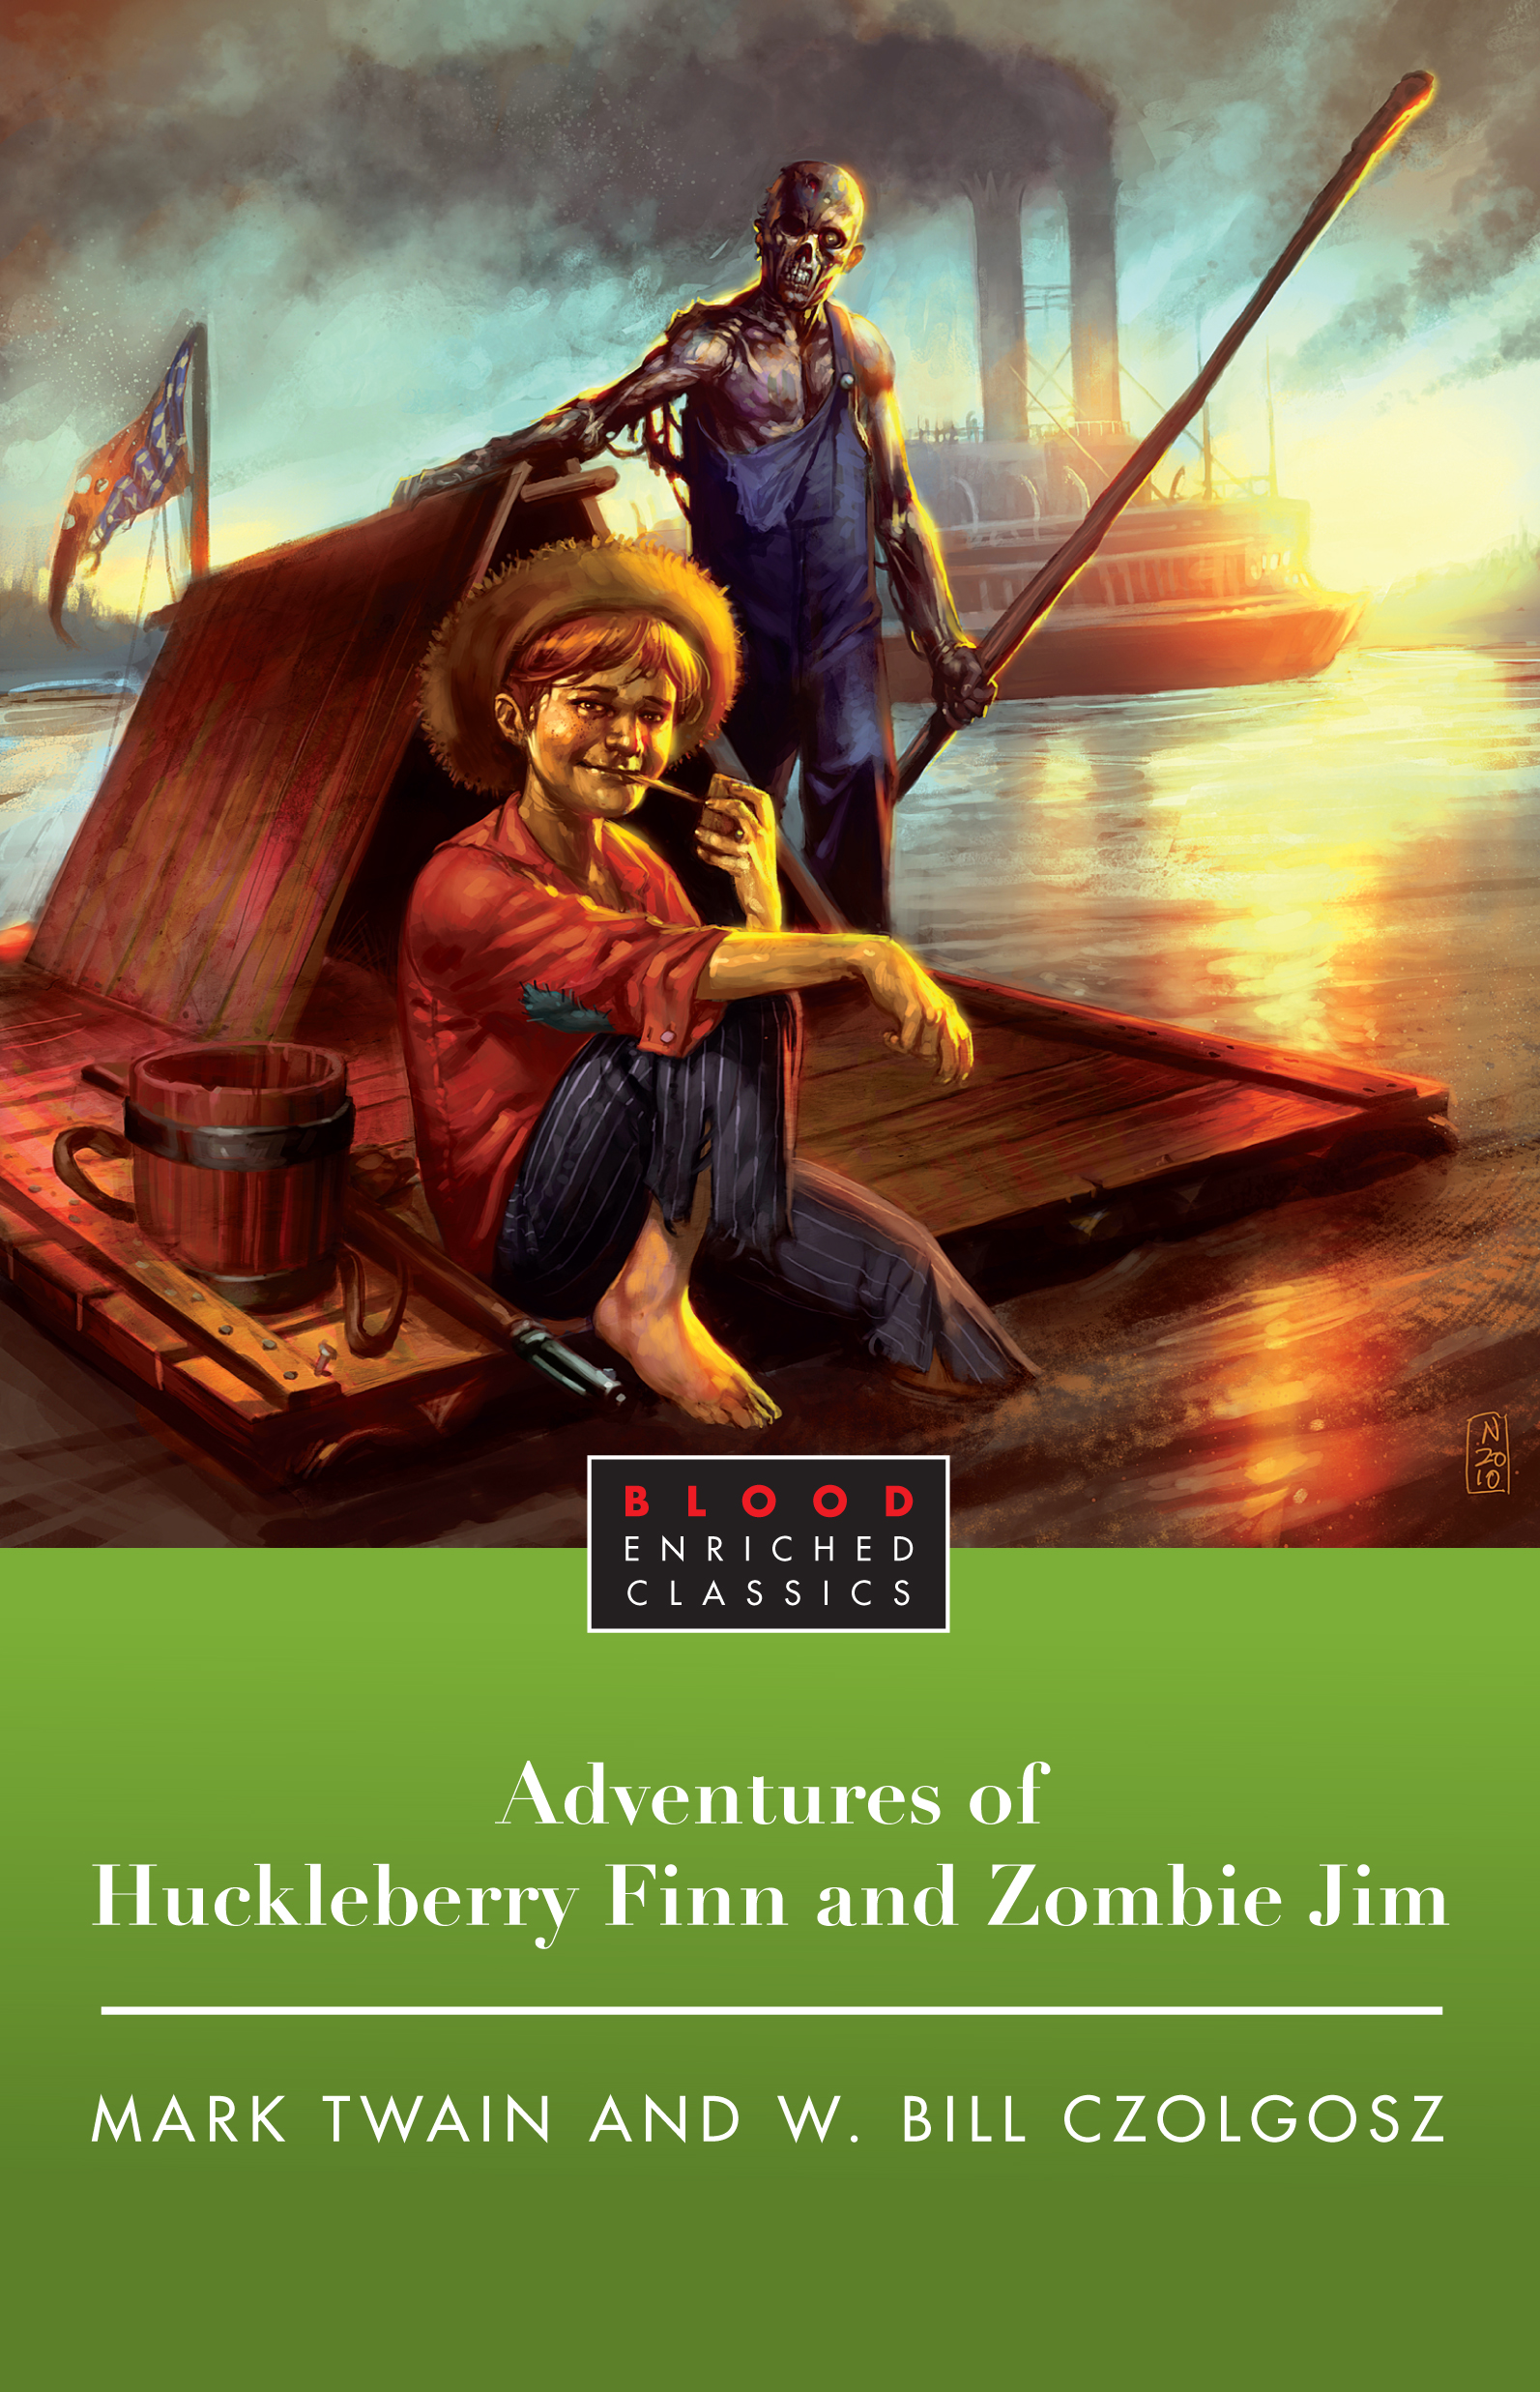 A book similar to Adventures of Huckleberry Finn?